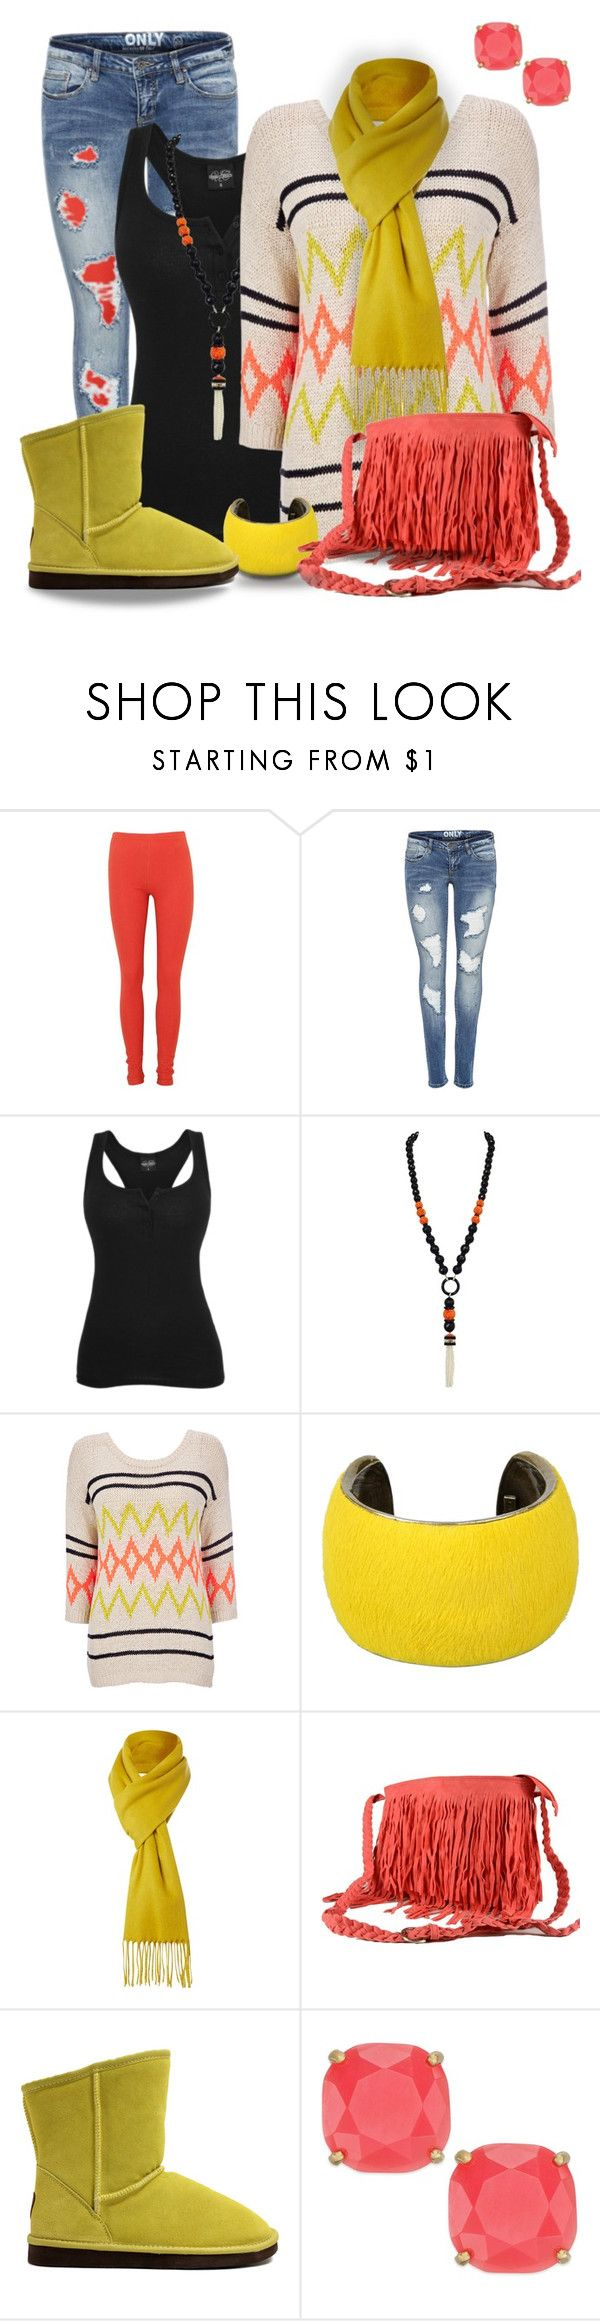 """""""Spring Forward, Fall Back"""" by jacci0528 ❤ liked on Polyvore featuring Wallis, Isabel Marant, Dije and Kate Spade"""